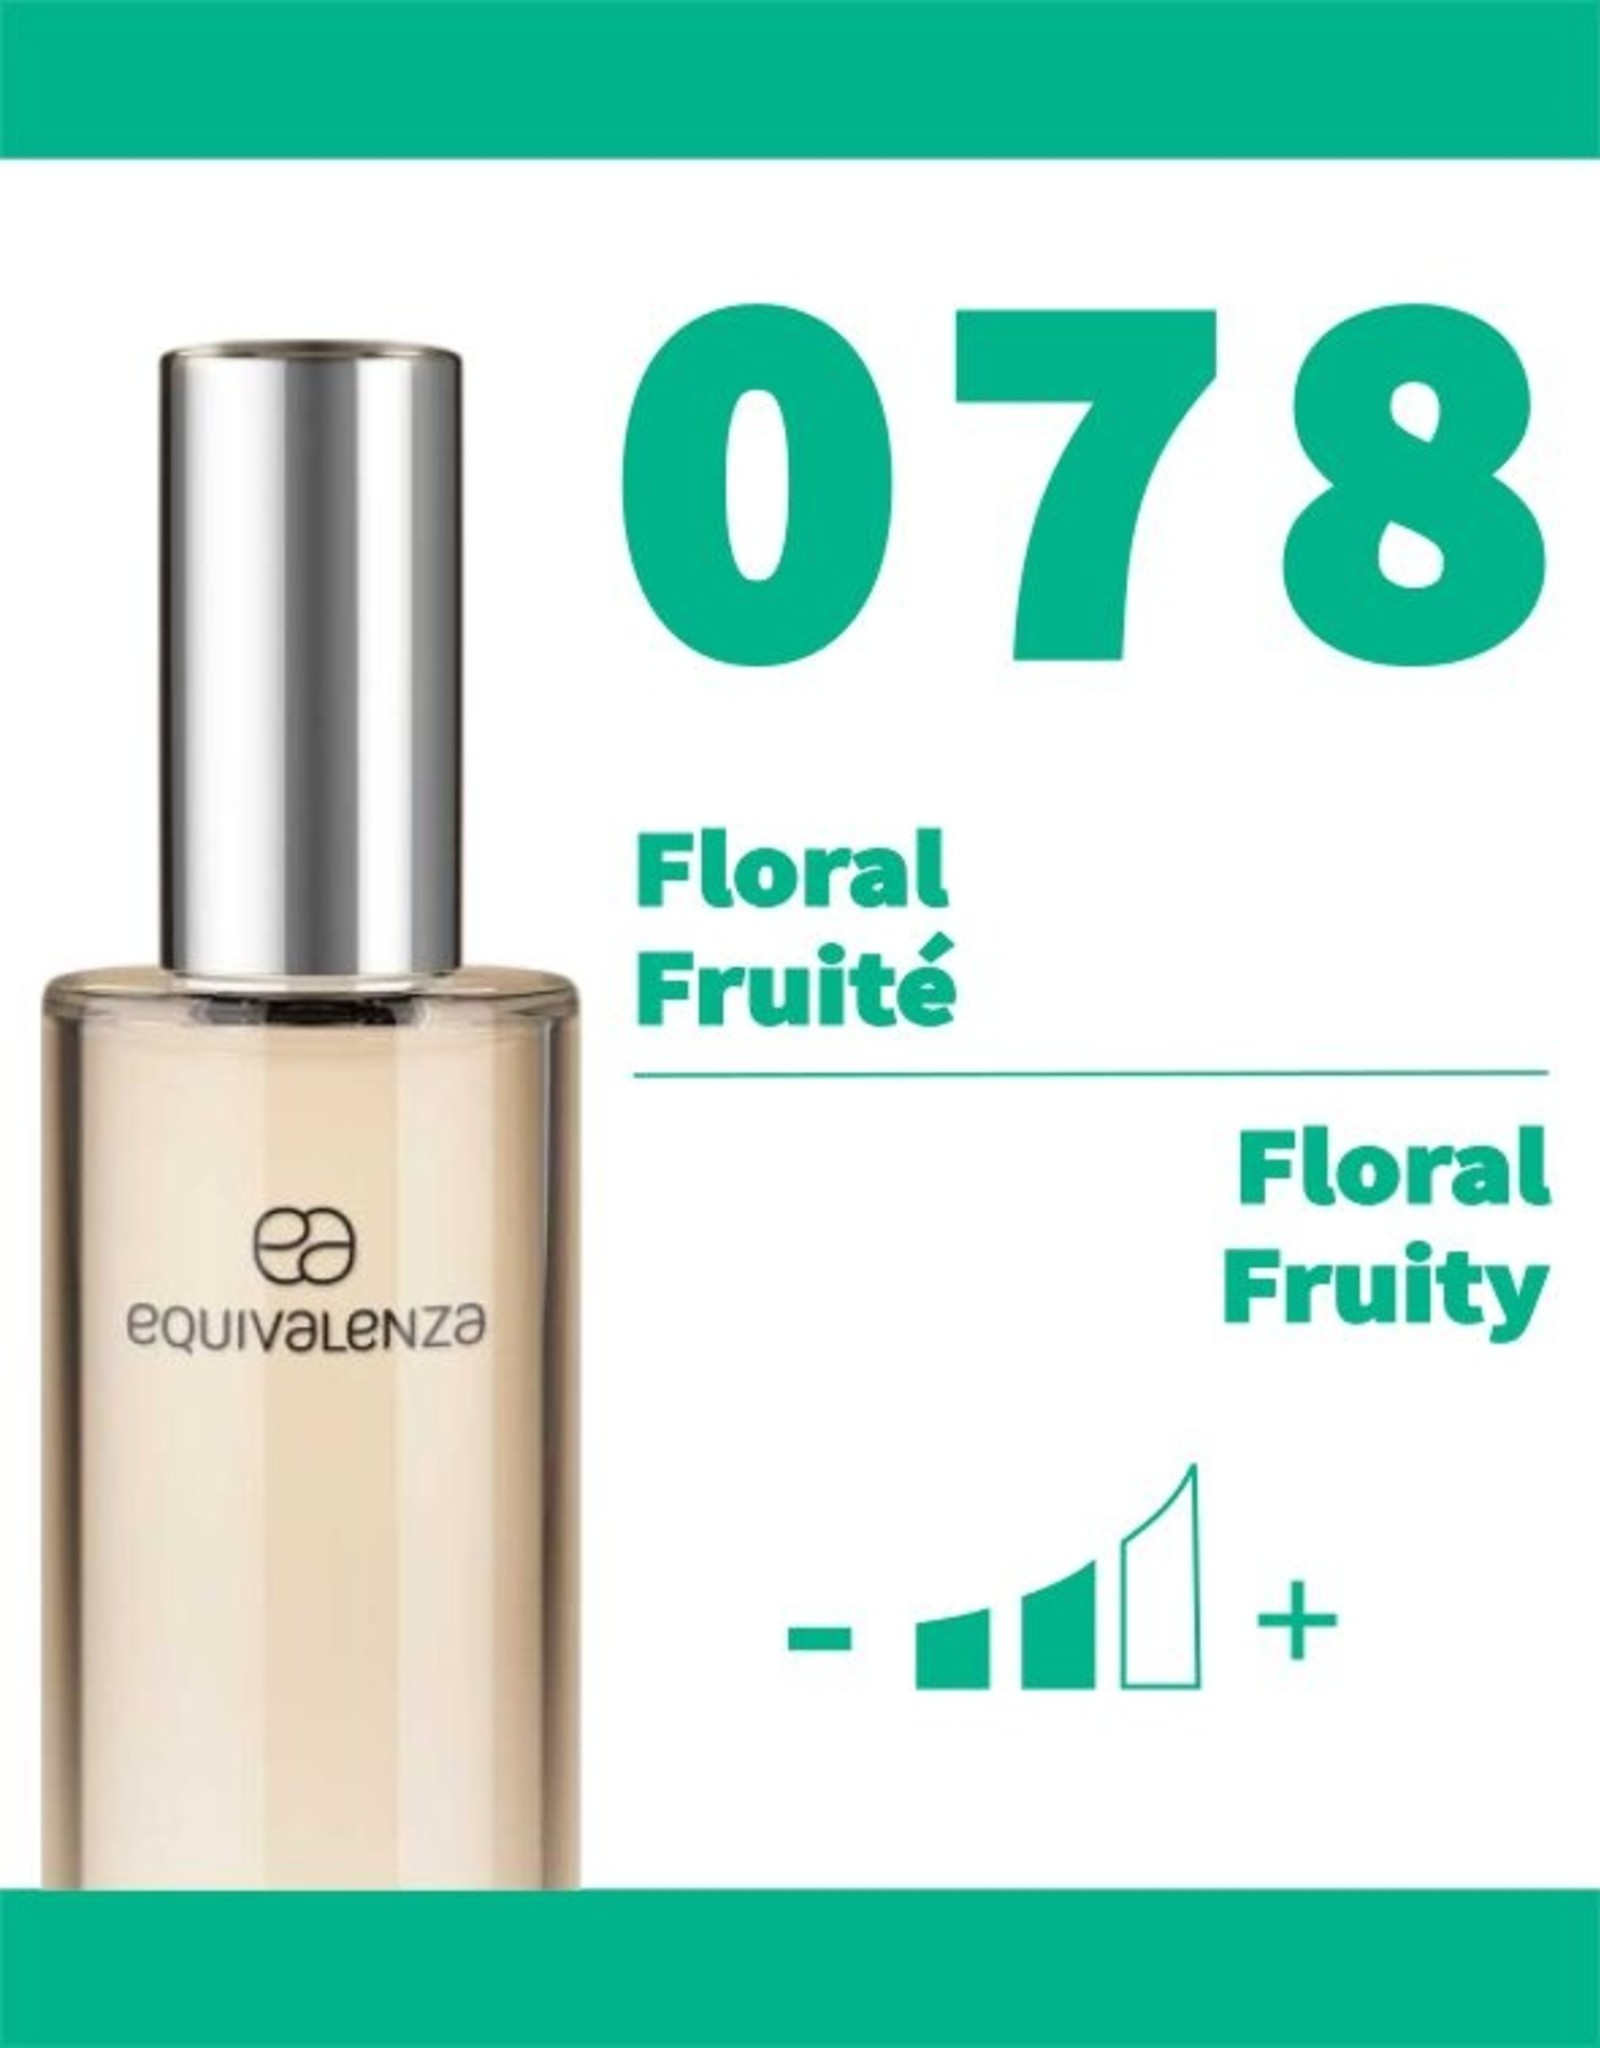 Equivalenza Floral Fruity 078